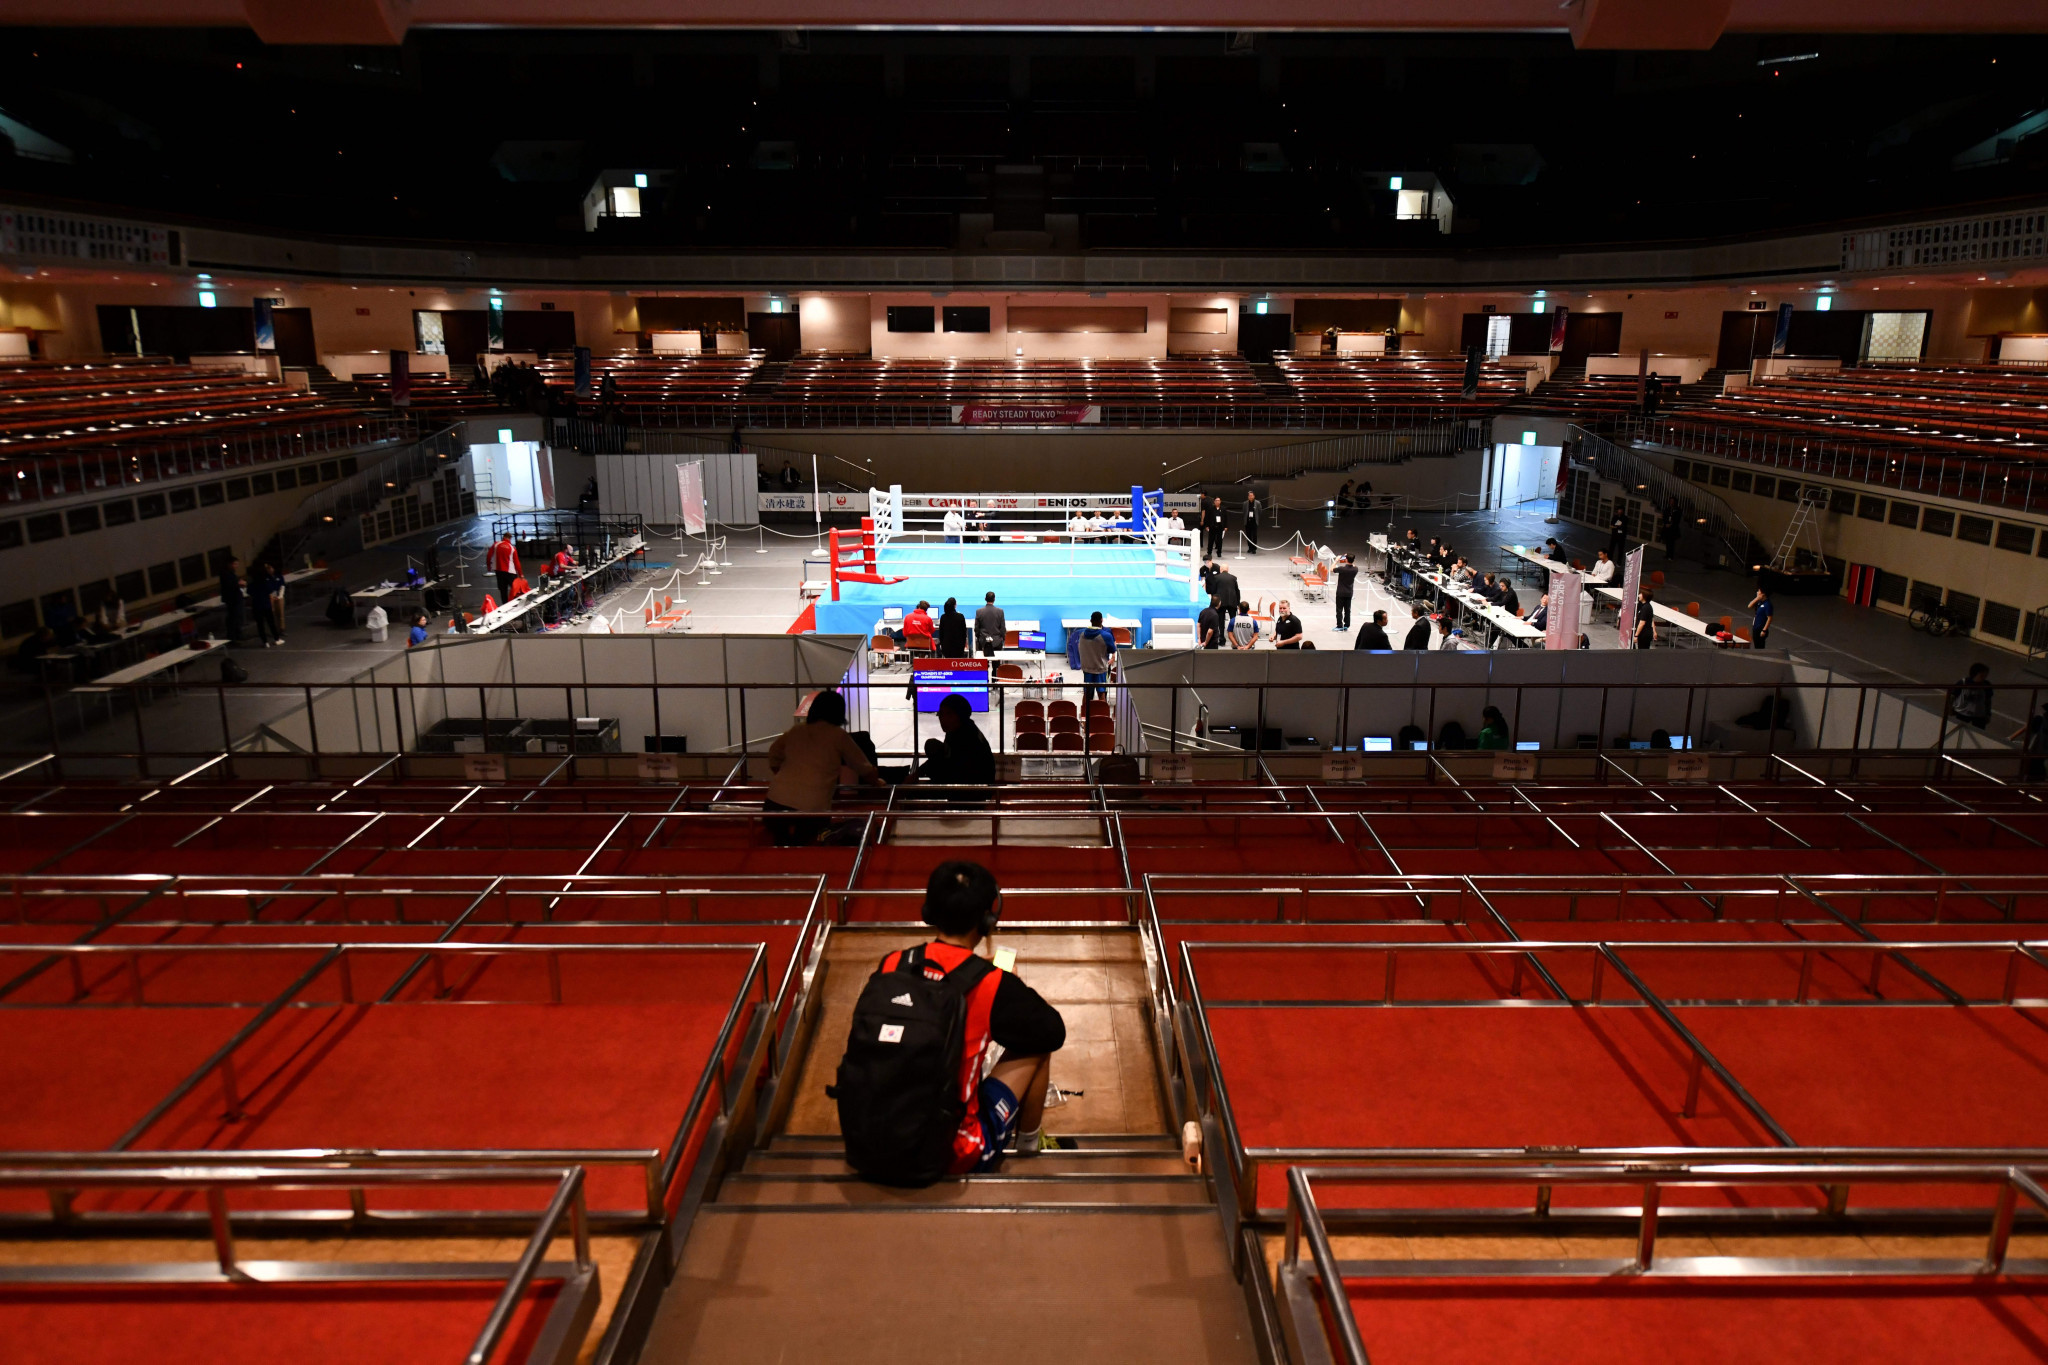 Home favourite Okazawa wins as Tokyo 2020 boxing test event concludes